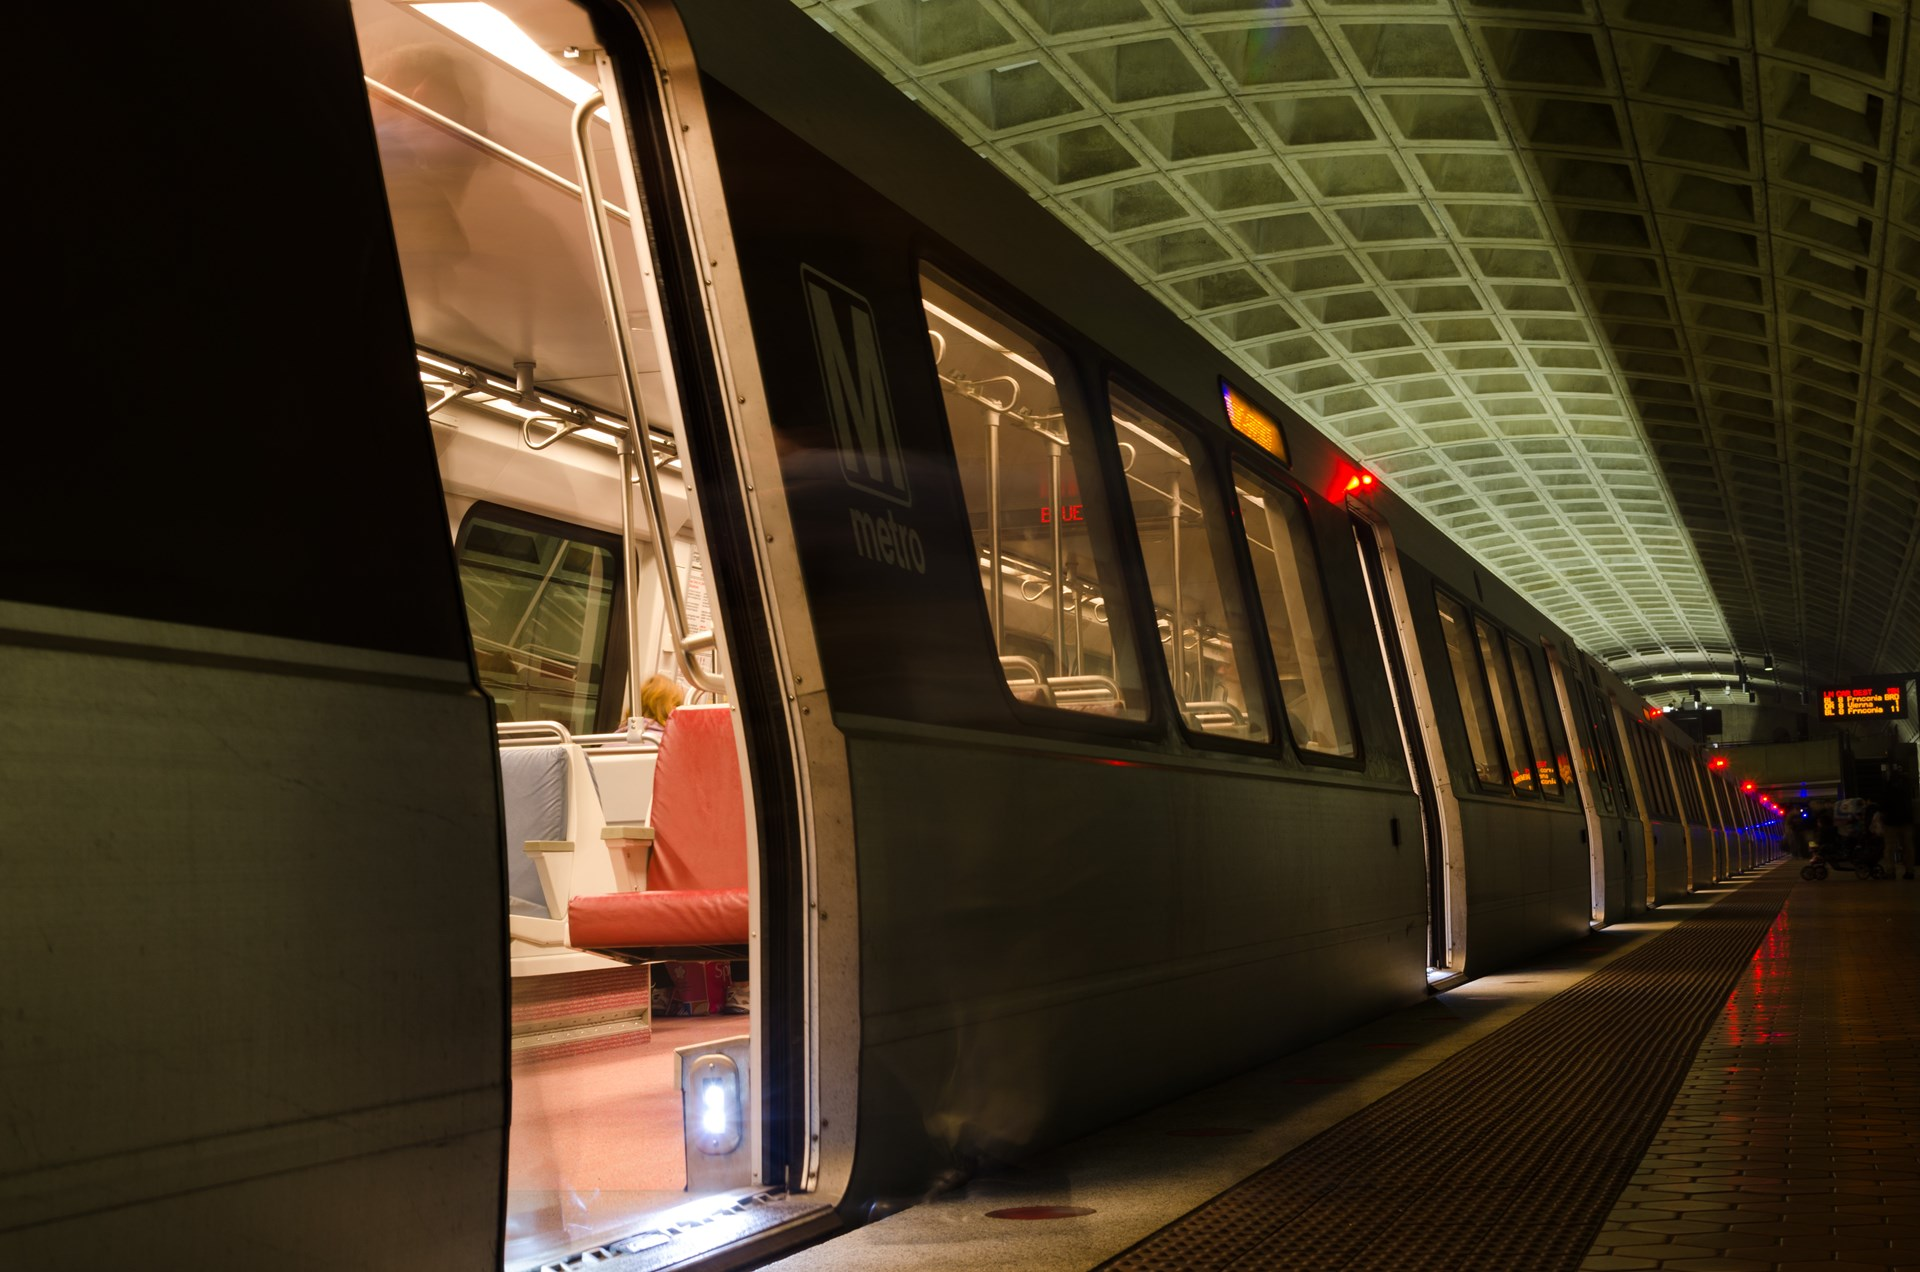 End DC Metro - Foundation for Economic Education